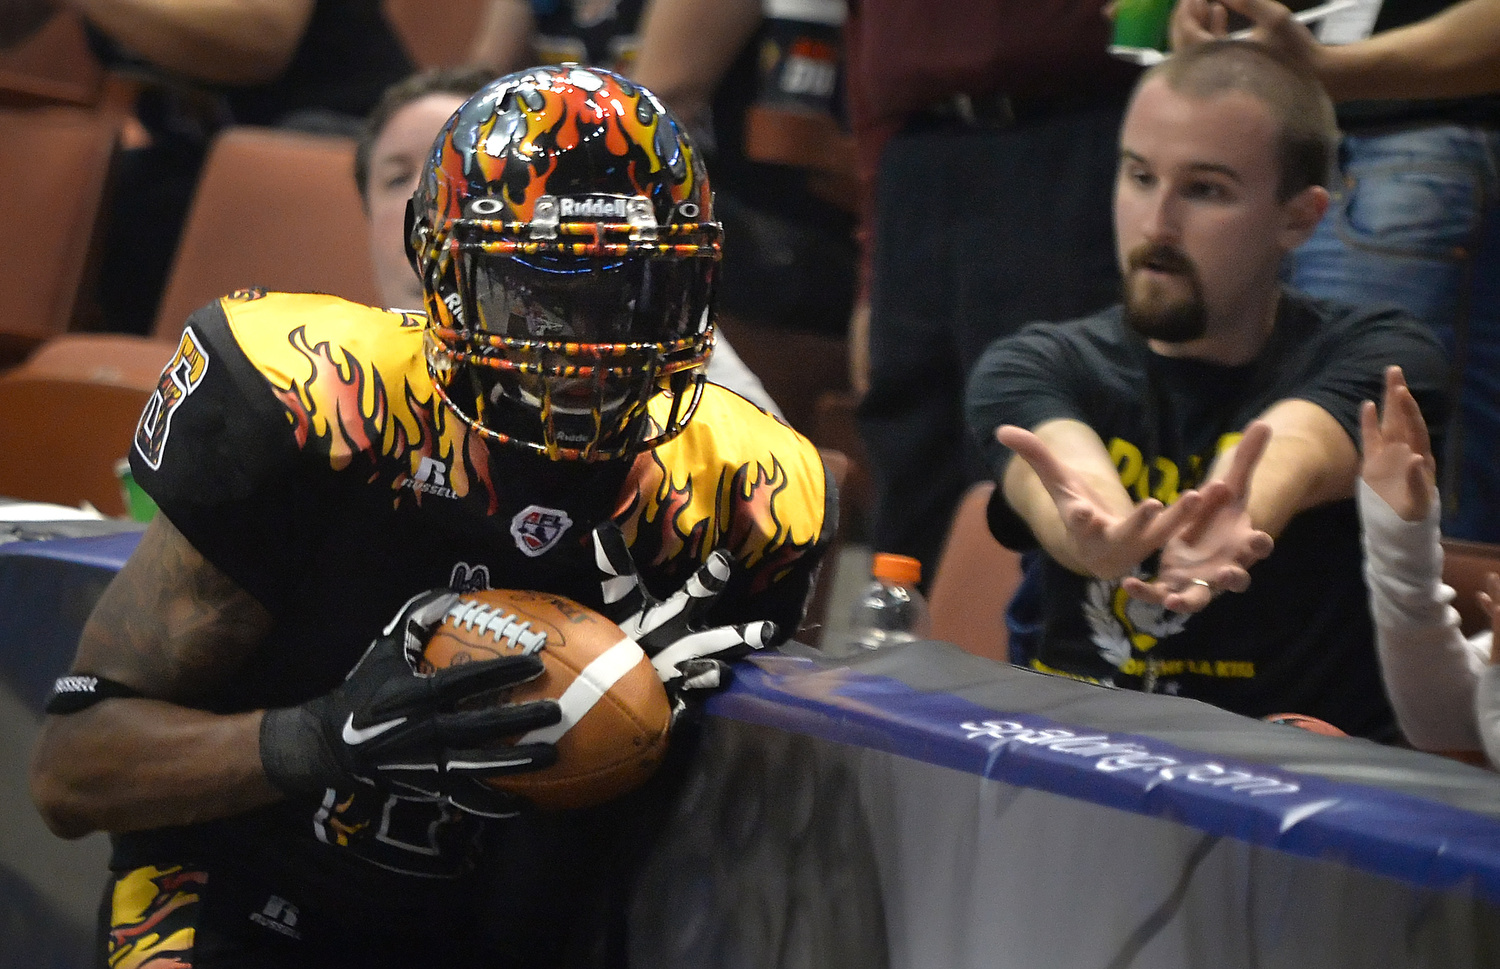 LA KissÕ Thyron Lewis catches a pass as a fan reaches out in case he missed during an arena football game against the Las Vegas Outlaws at the Honda Center. STEVEN GEORGES, CONTRIBUTING PHOTOGRAPHER ///ADDITIONAL INFORMATION:  LA Kiss vs. Las Vegas Outlaws arena football at the Honda Center. 7/25/15 Slug:  LAKiss.0412